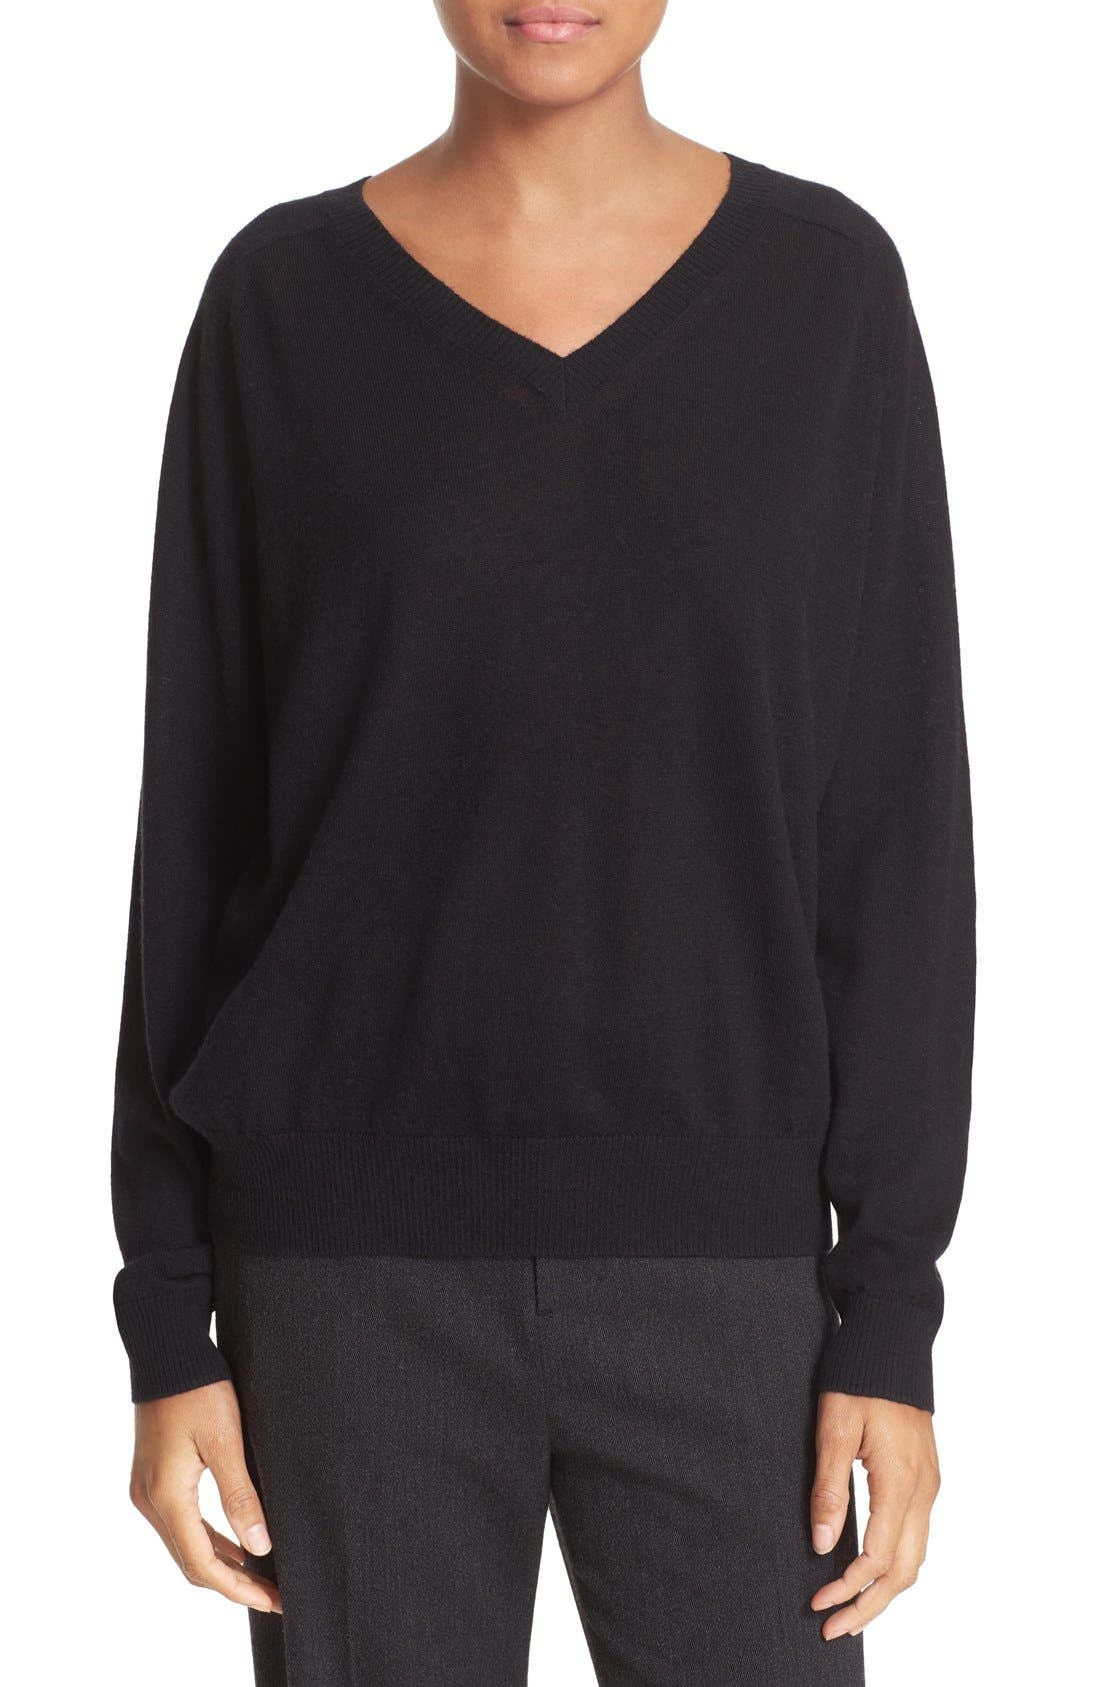 VINCE, Relaxed Cashmere V-Neck Sweater, Main thumbnail 1, color, 001